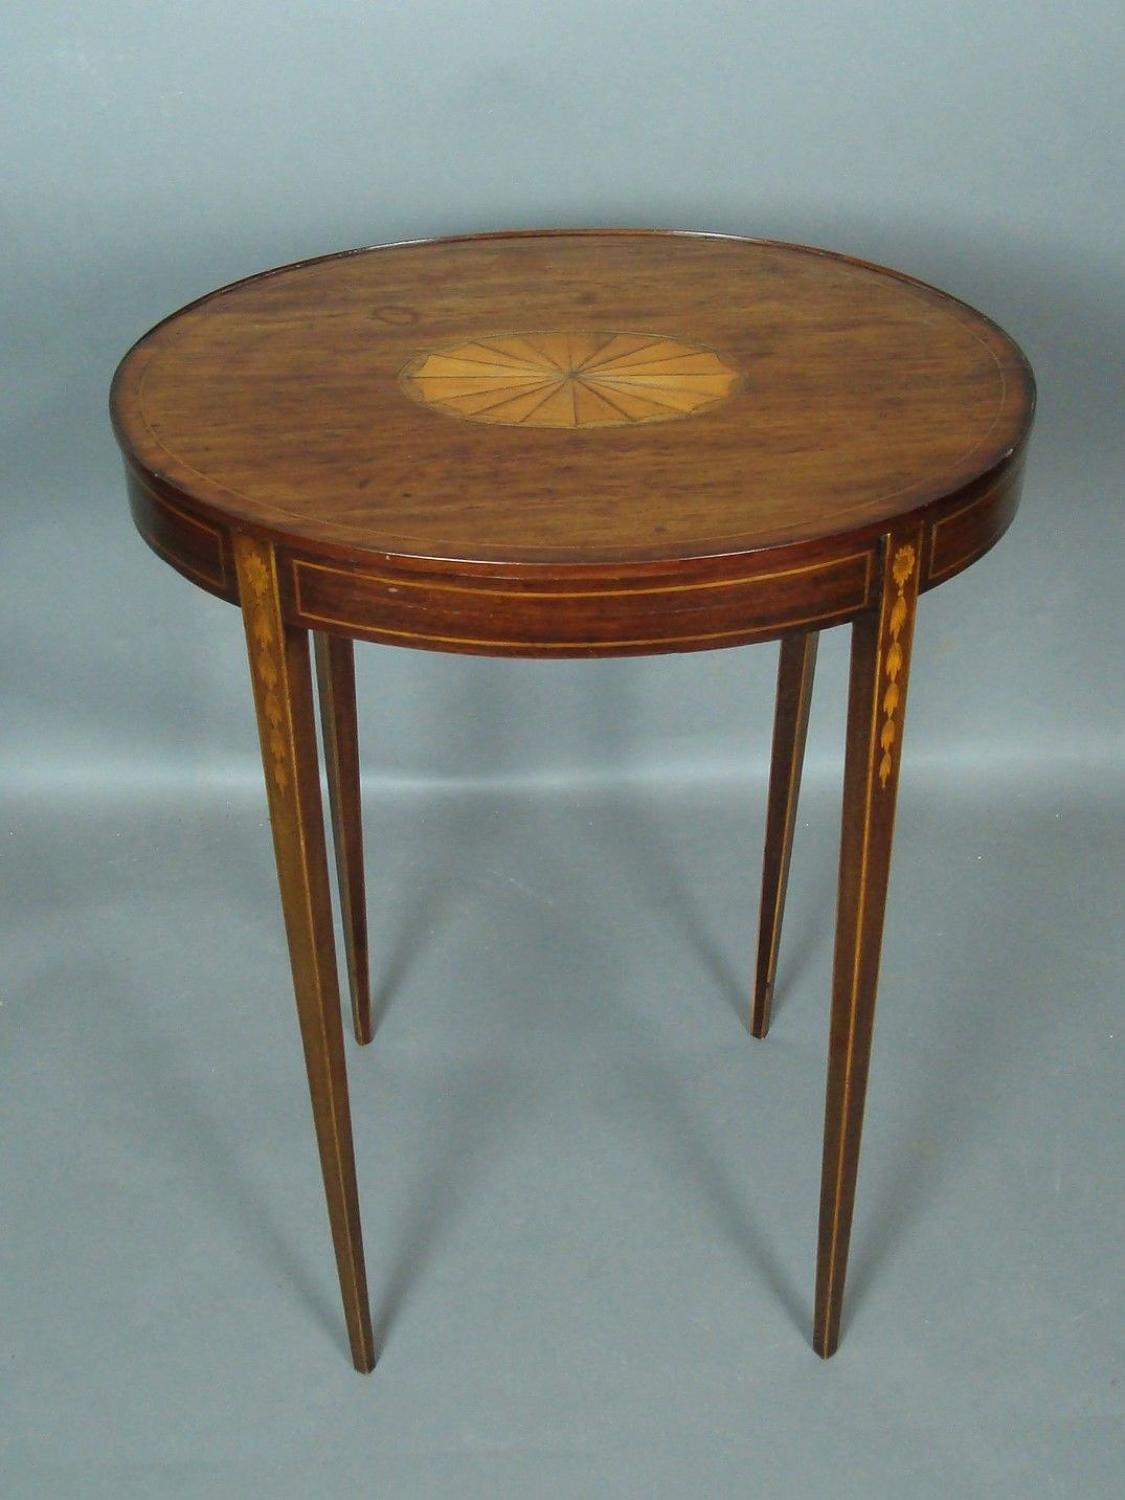 George III Sheraton inlaid mahogany oval occasional table